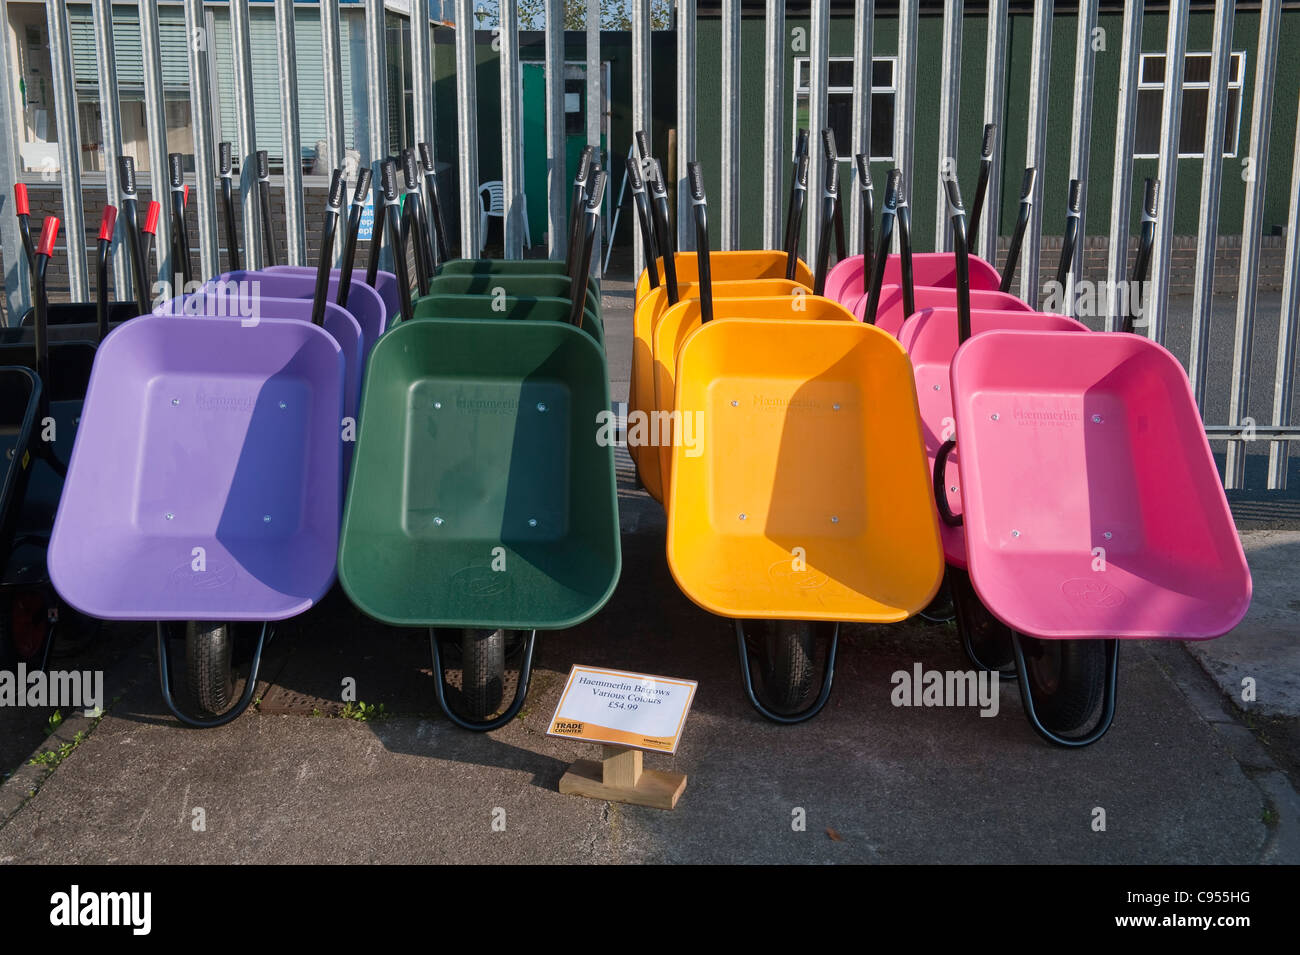 Countrywide Stores, Presteigne. Plastic wheelbarrows - Stock Image